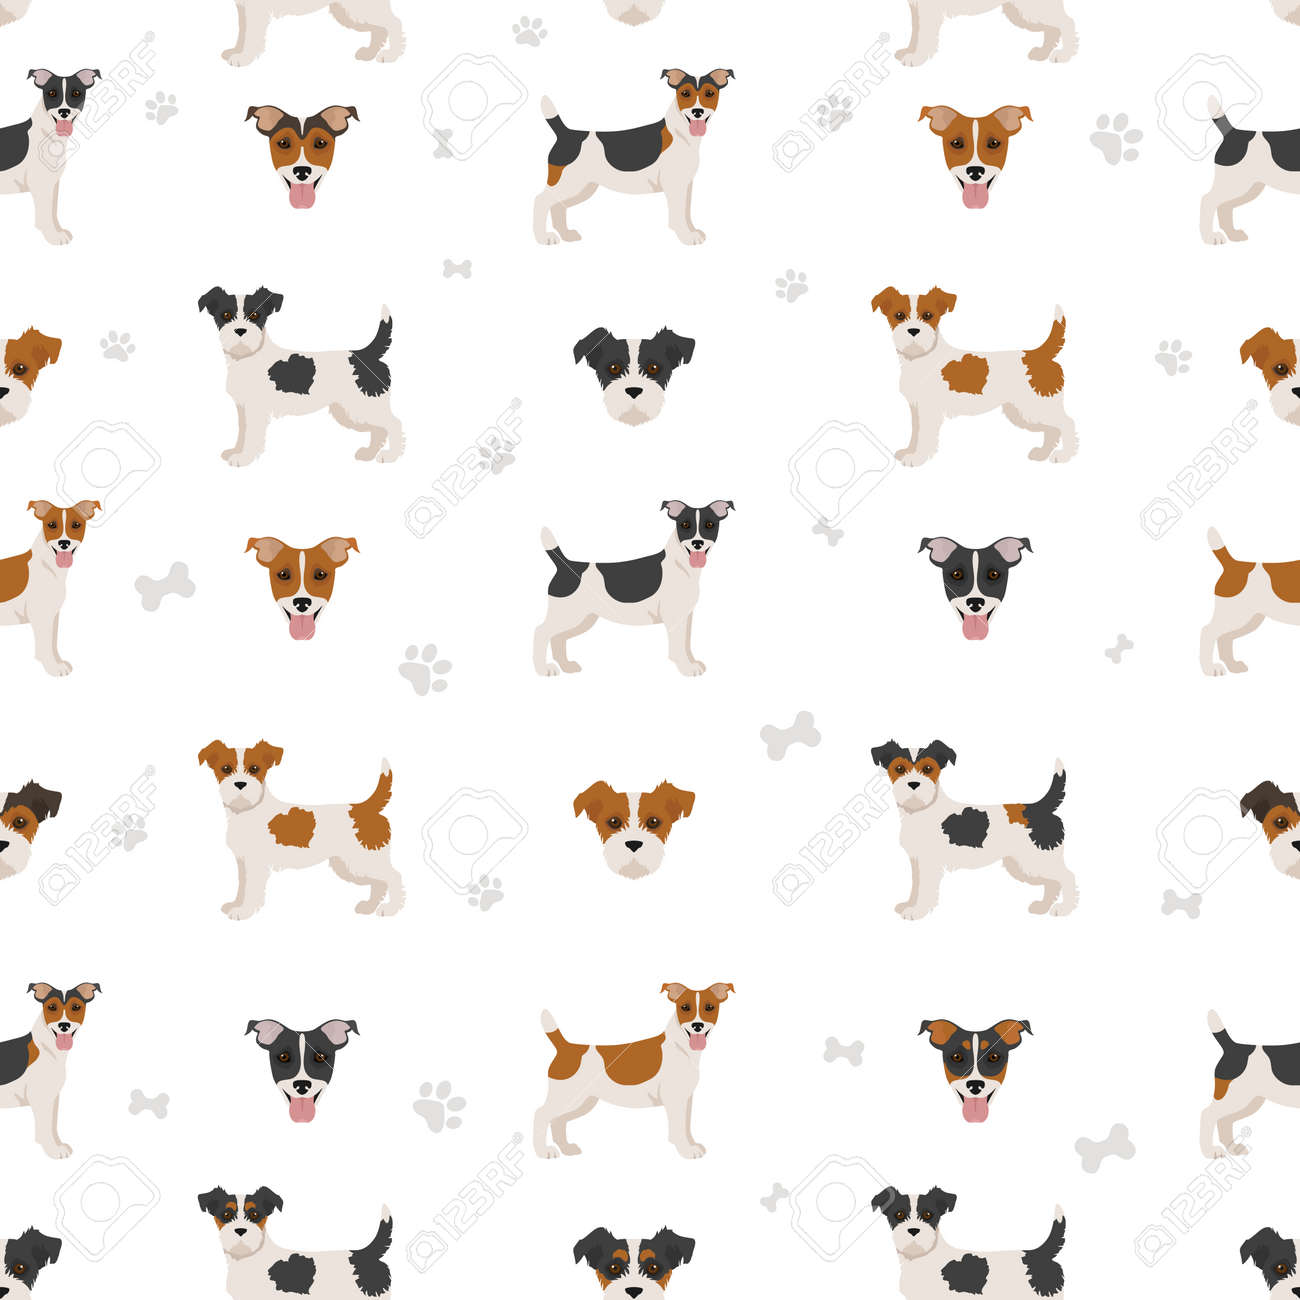 Jack Russel terrier in different poses and coat colors seamless pattern. Adult dogs and puppy set. Vector illustration - 168789349